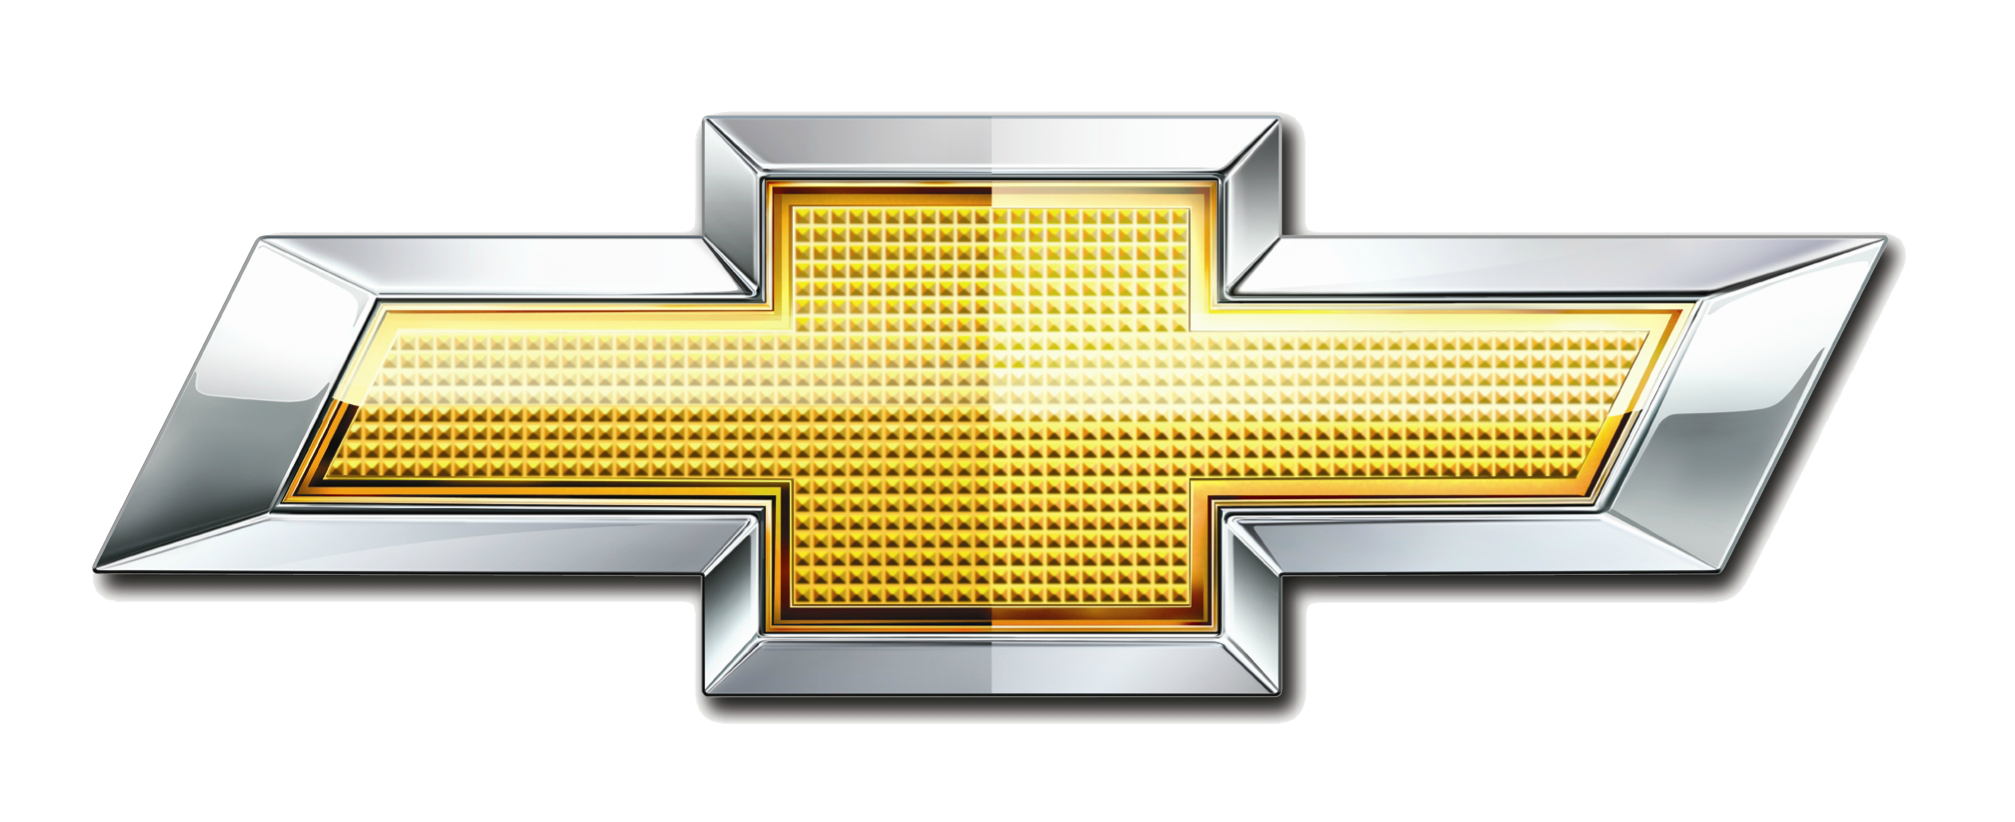 Chevy Bowtie Logo Png chevrolet logo meaning and history, latest ...